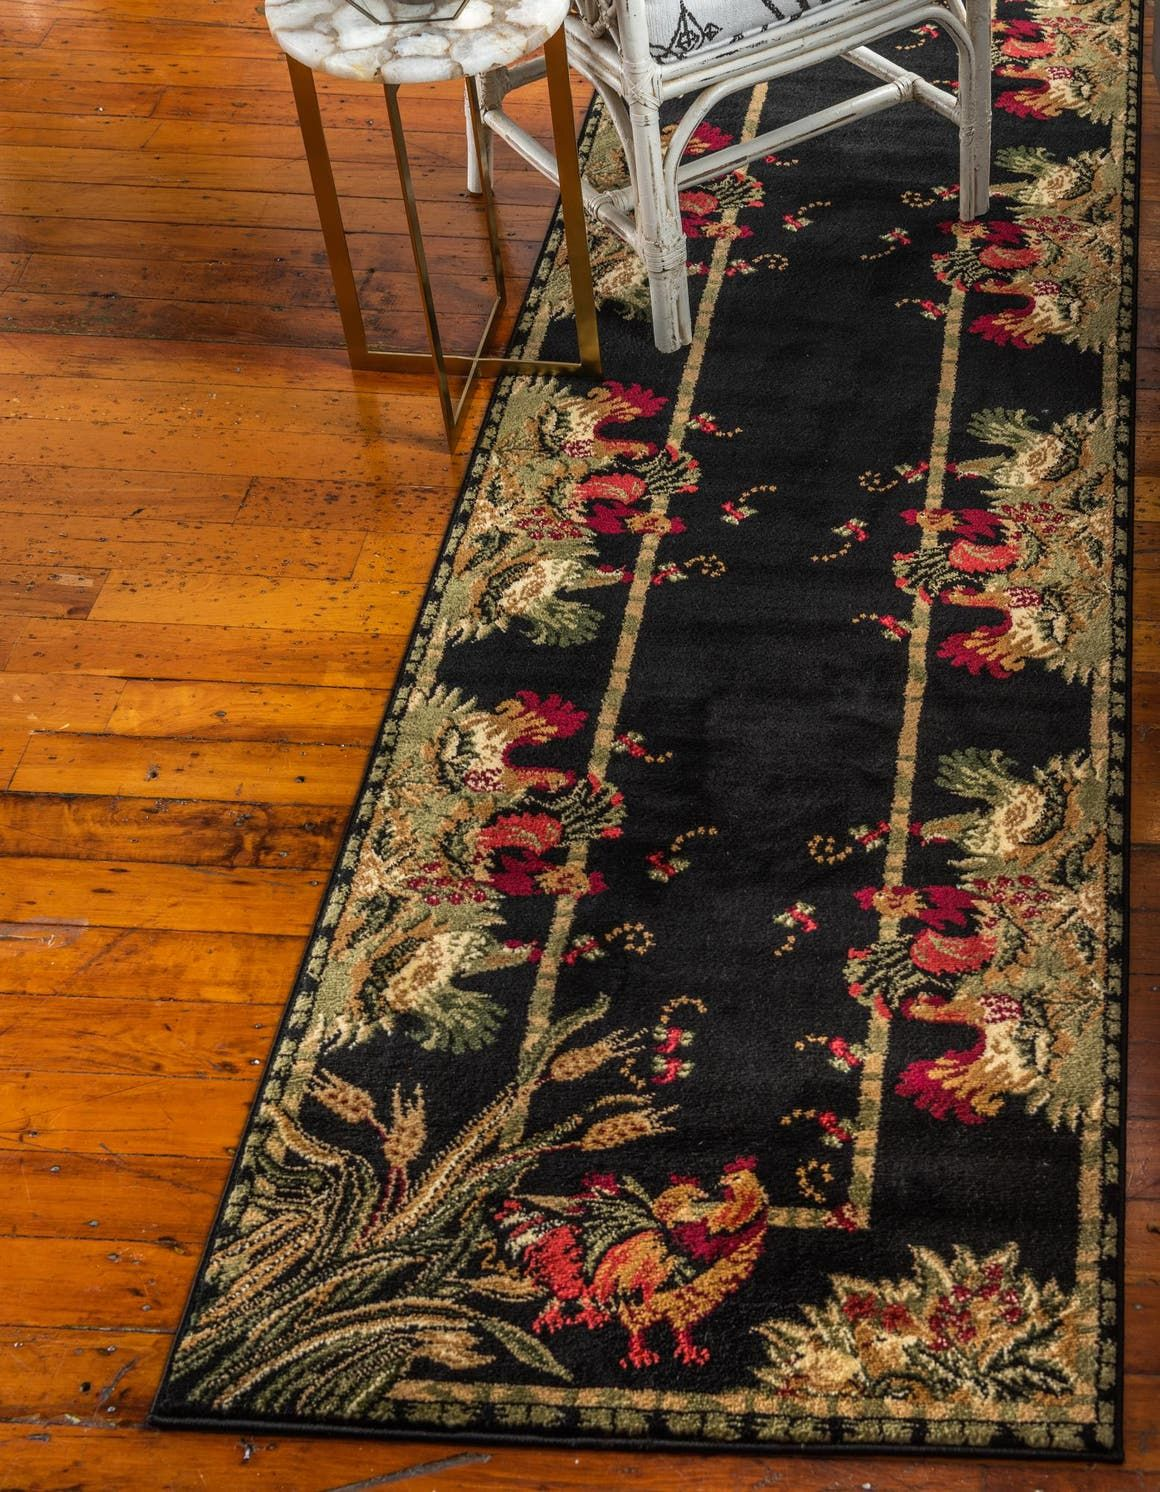 Pastoral Black 10 Ft Runner Area Rug In 2020 Black Area Rugs Country Area Rugs Purple Area Rugs